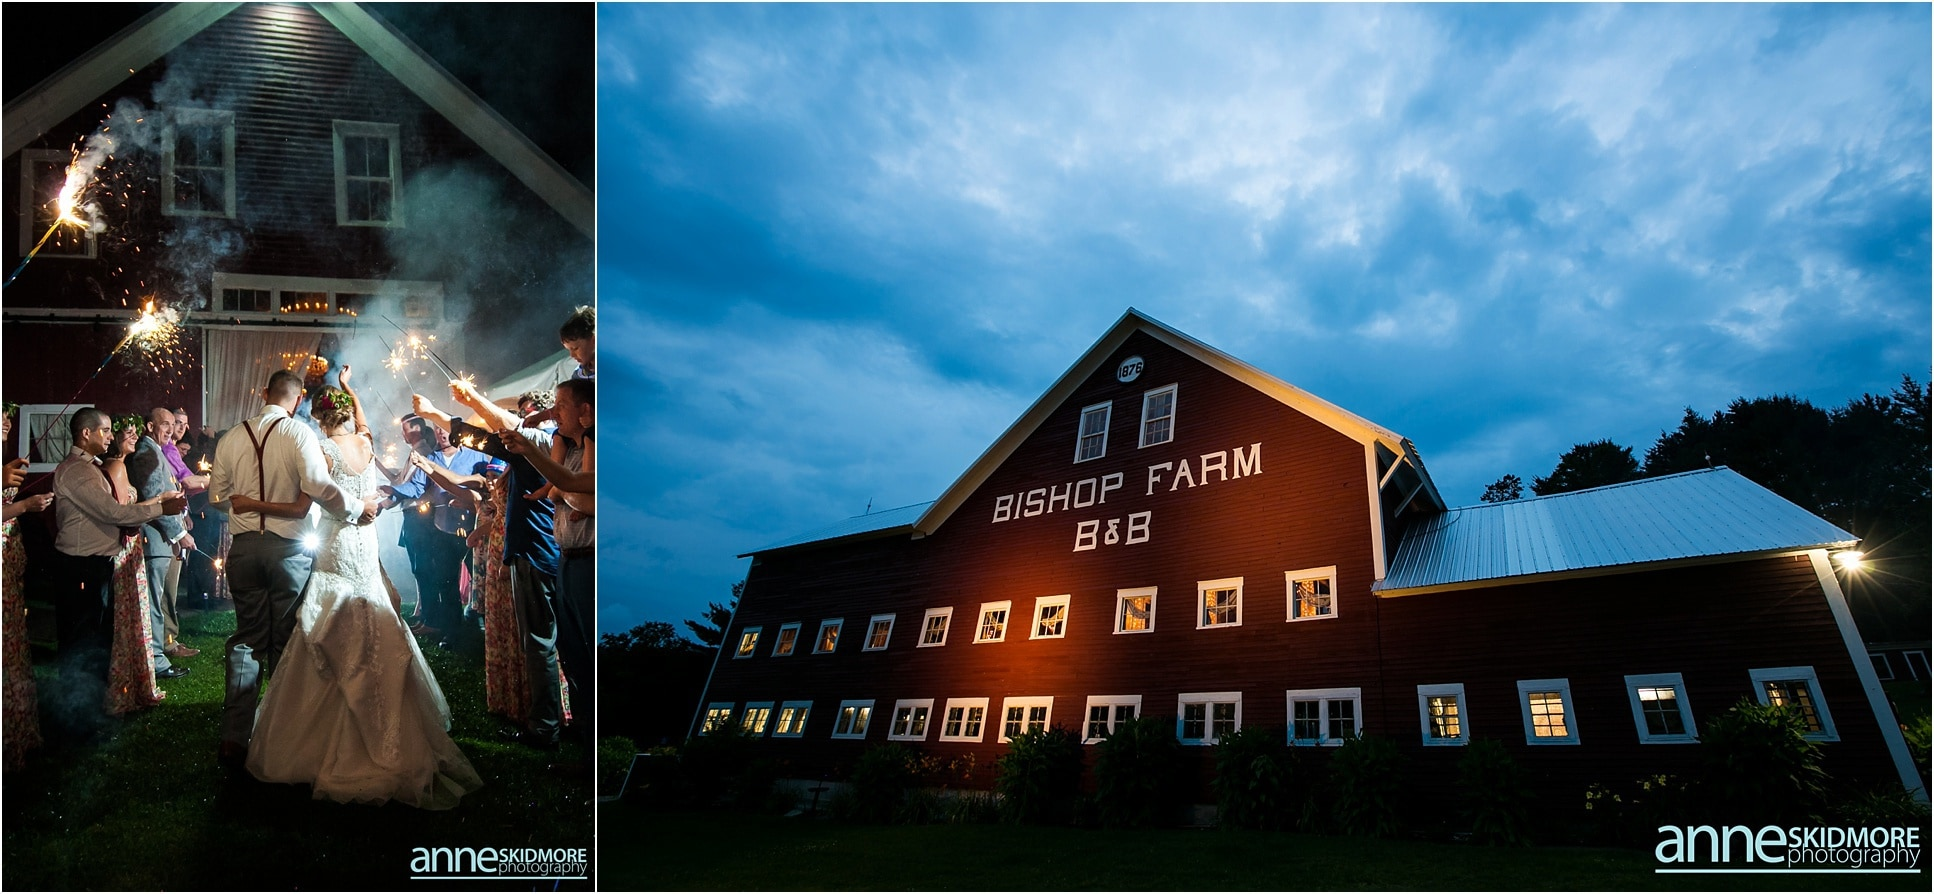 BISHOP_FARM_WEDDING__060